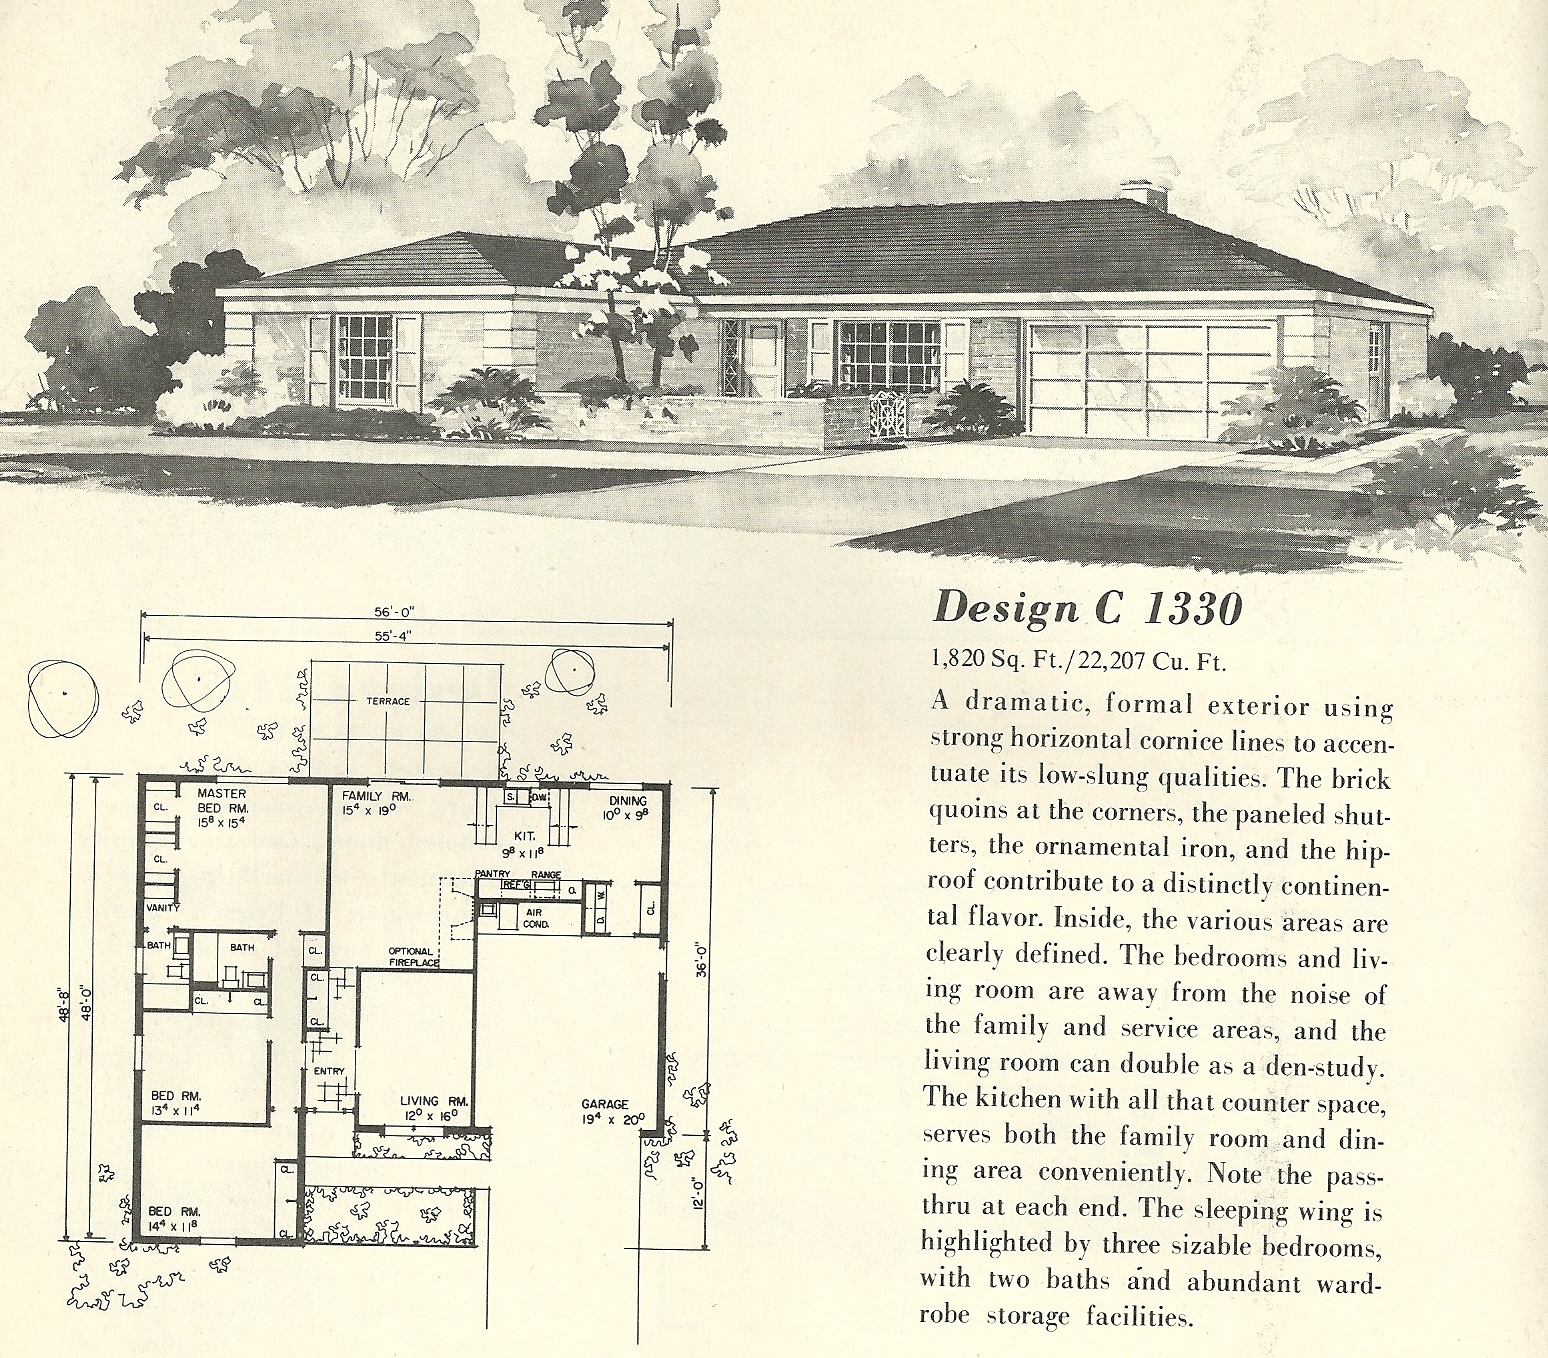 vintage house plans 1330 antique alter ego